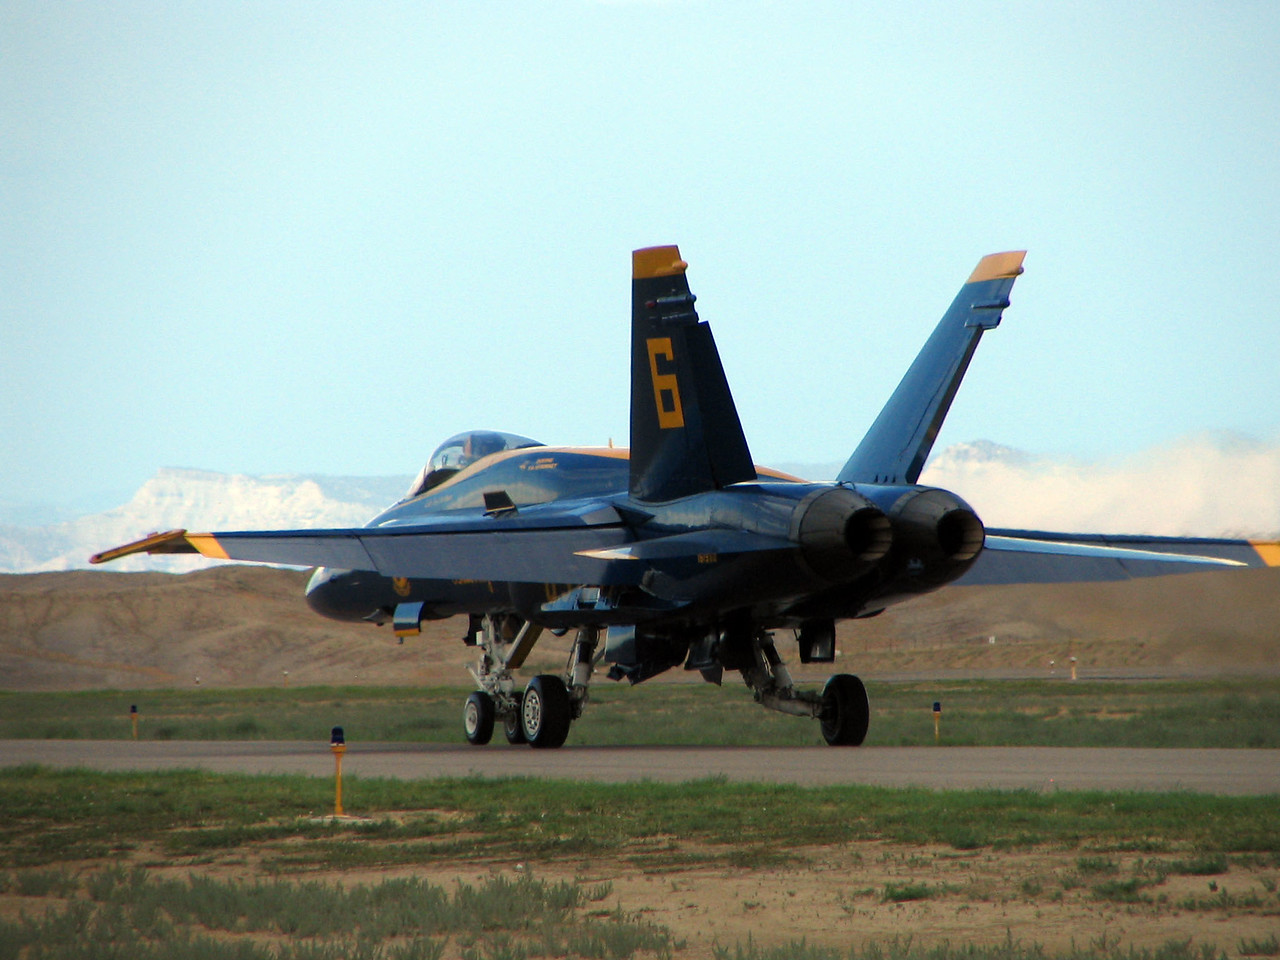 Blue Angel #6 taxies out to the far end of the runway prior to takeoff